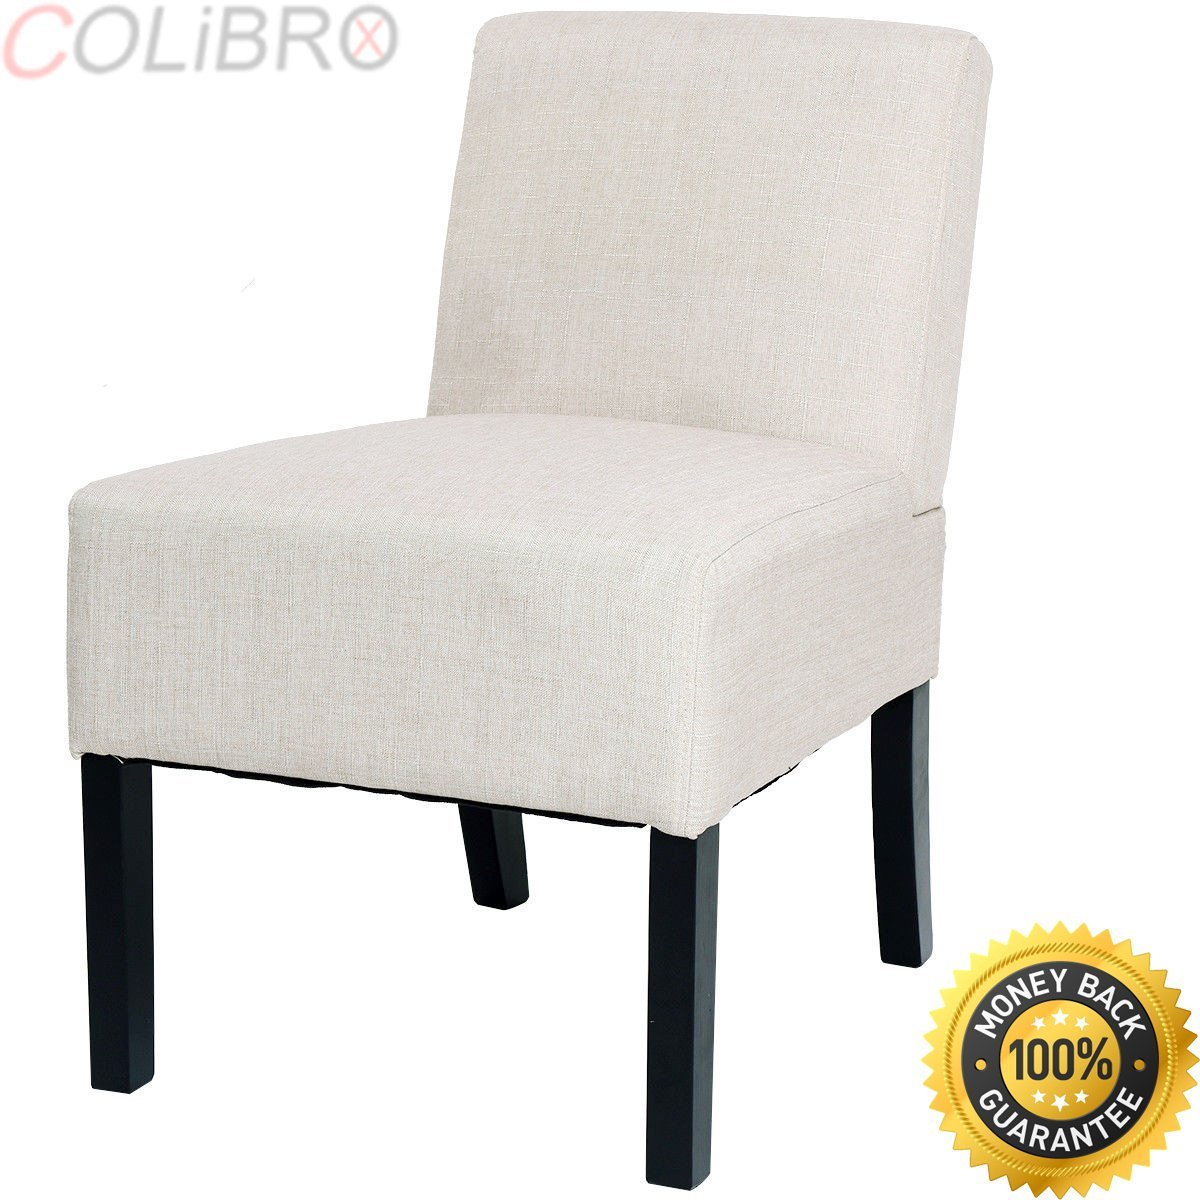 COLIBROX--Accent Chair Armless Contemporary Dining Chair Upholstered Seat Furniture Beige. armless accent chair. modern armless chair.armless accent chairs living room amazon.beige living room chair.